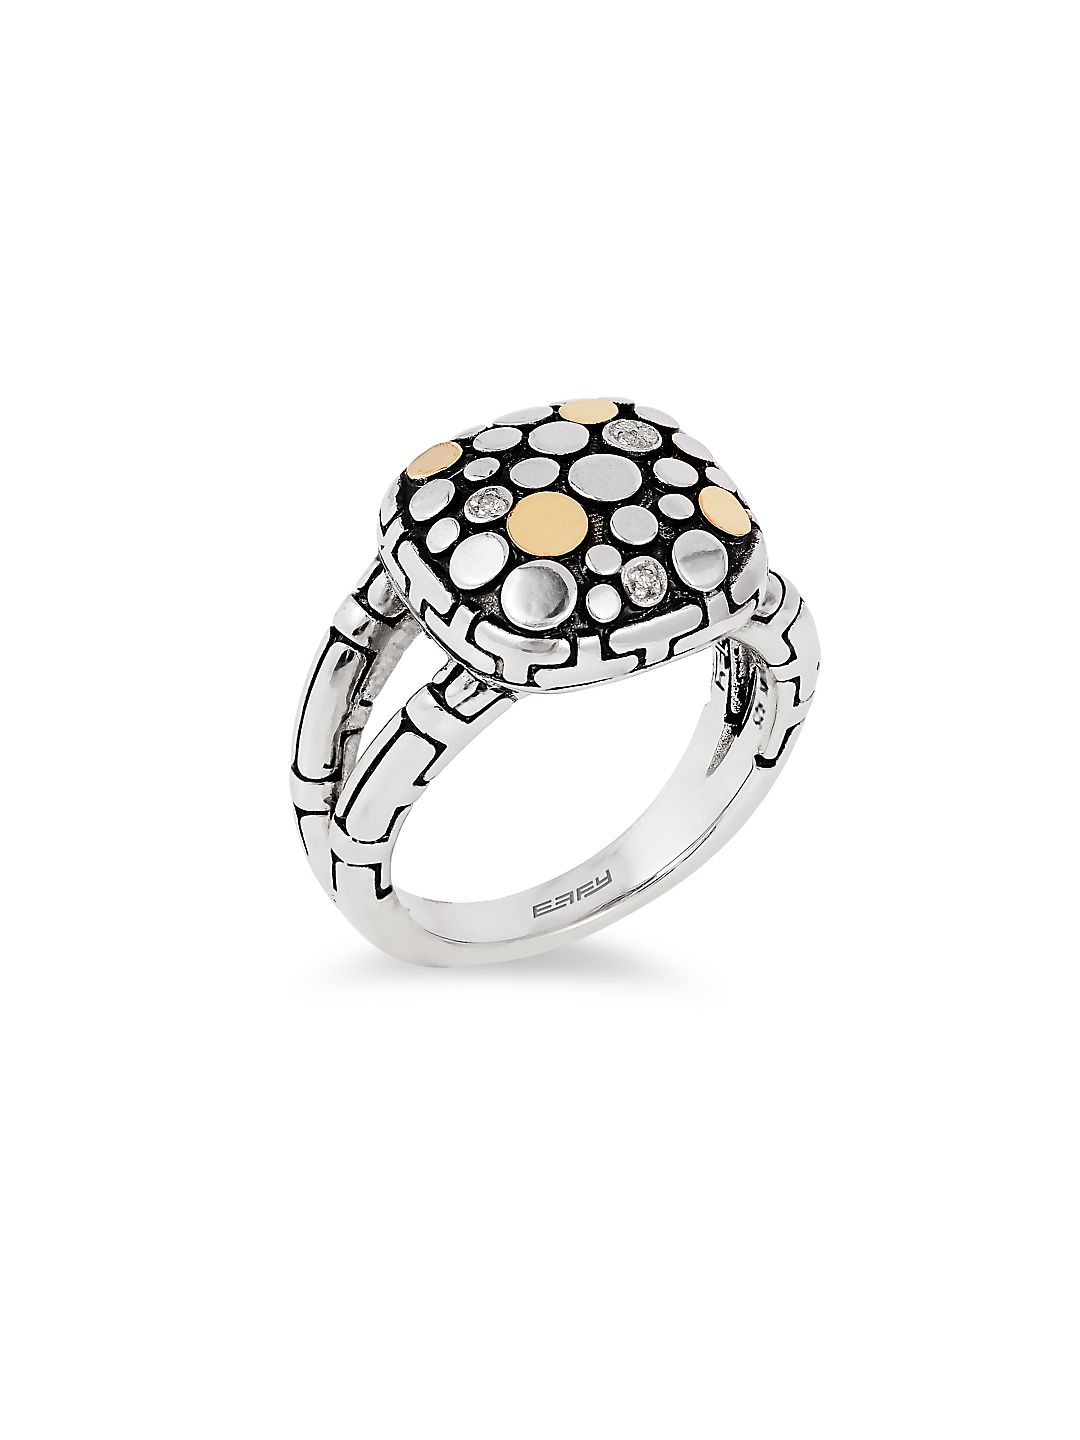 Diamond and 18K Gold-Plated Sterling Silver Ring